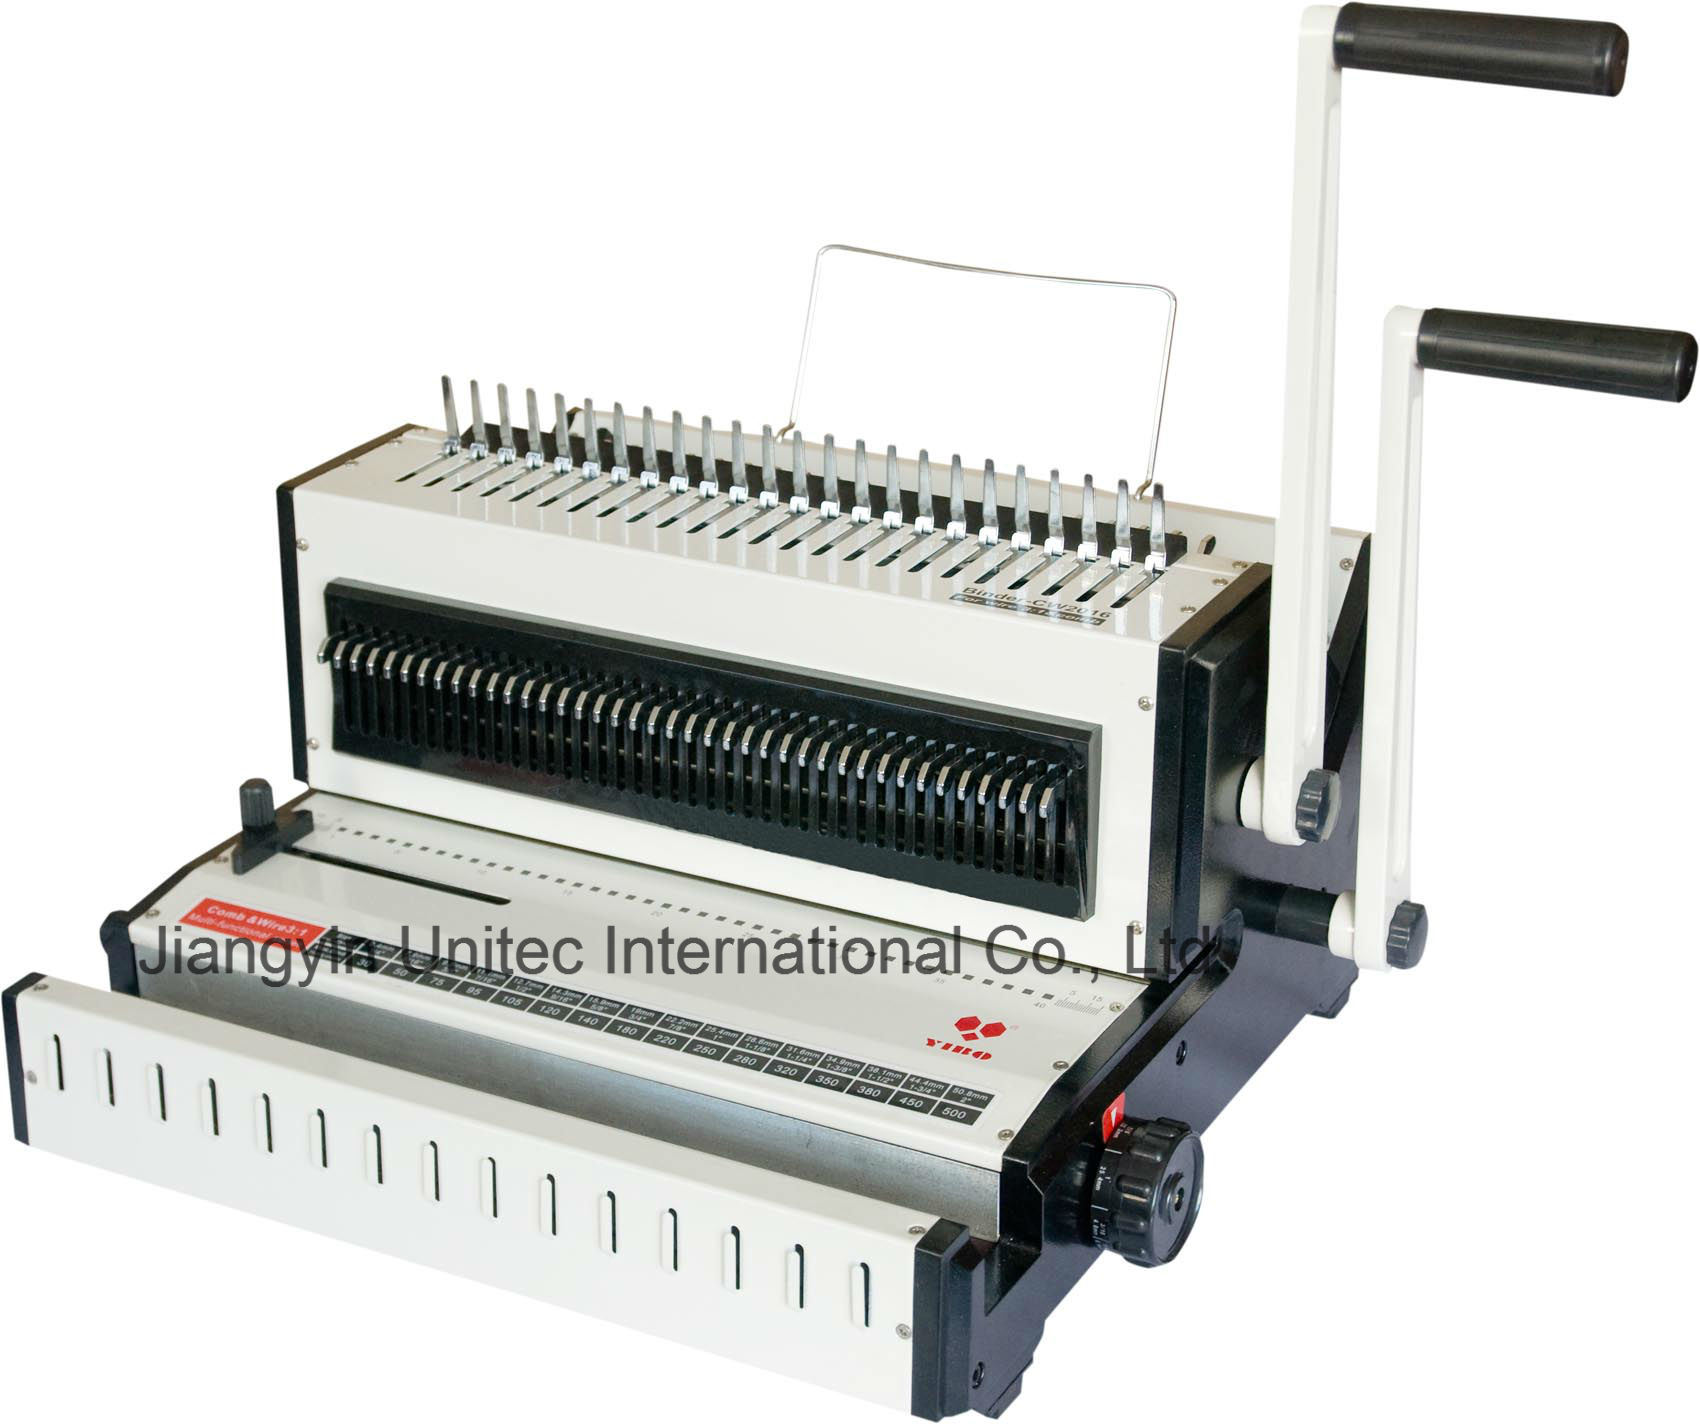 2016 New Selling Cw2016 Comb and Wire Book Binding Machine